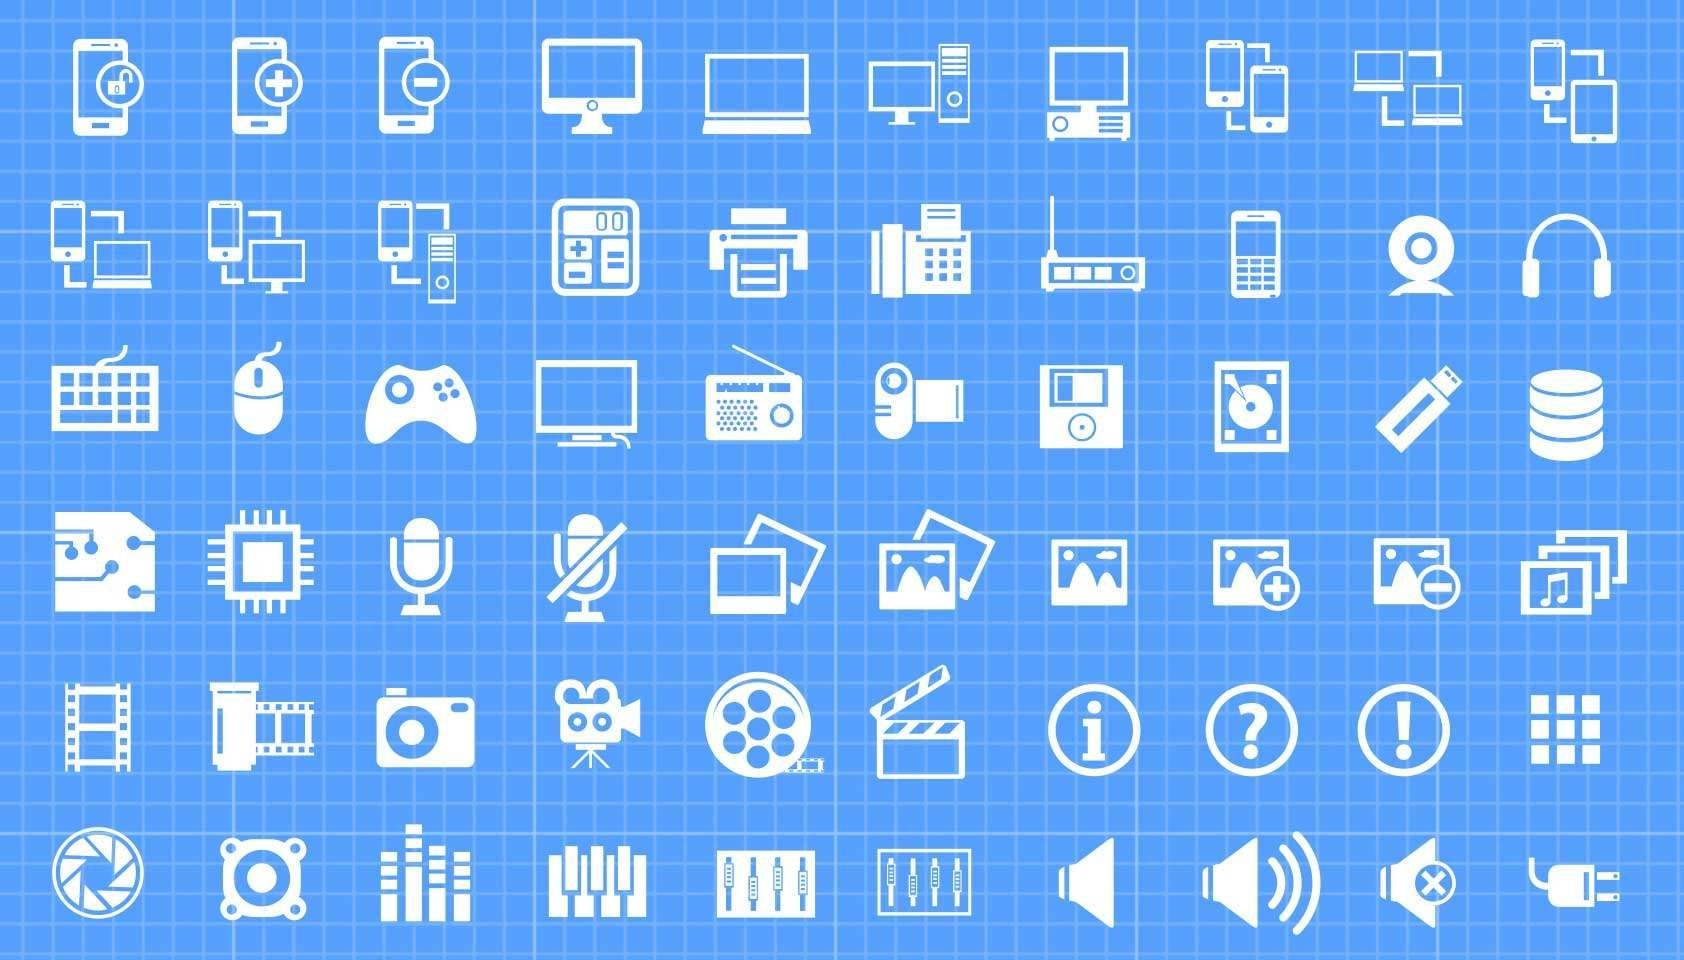 Free download 500 Vector Mega Icon Pack Free web design